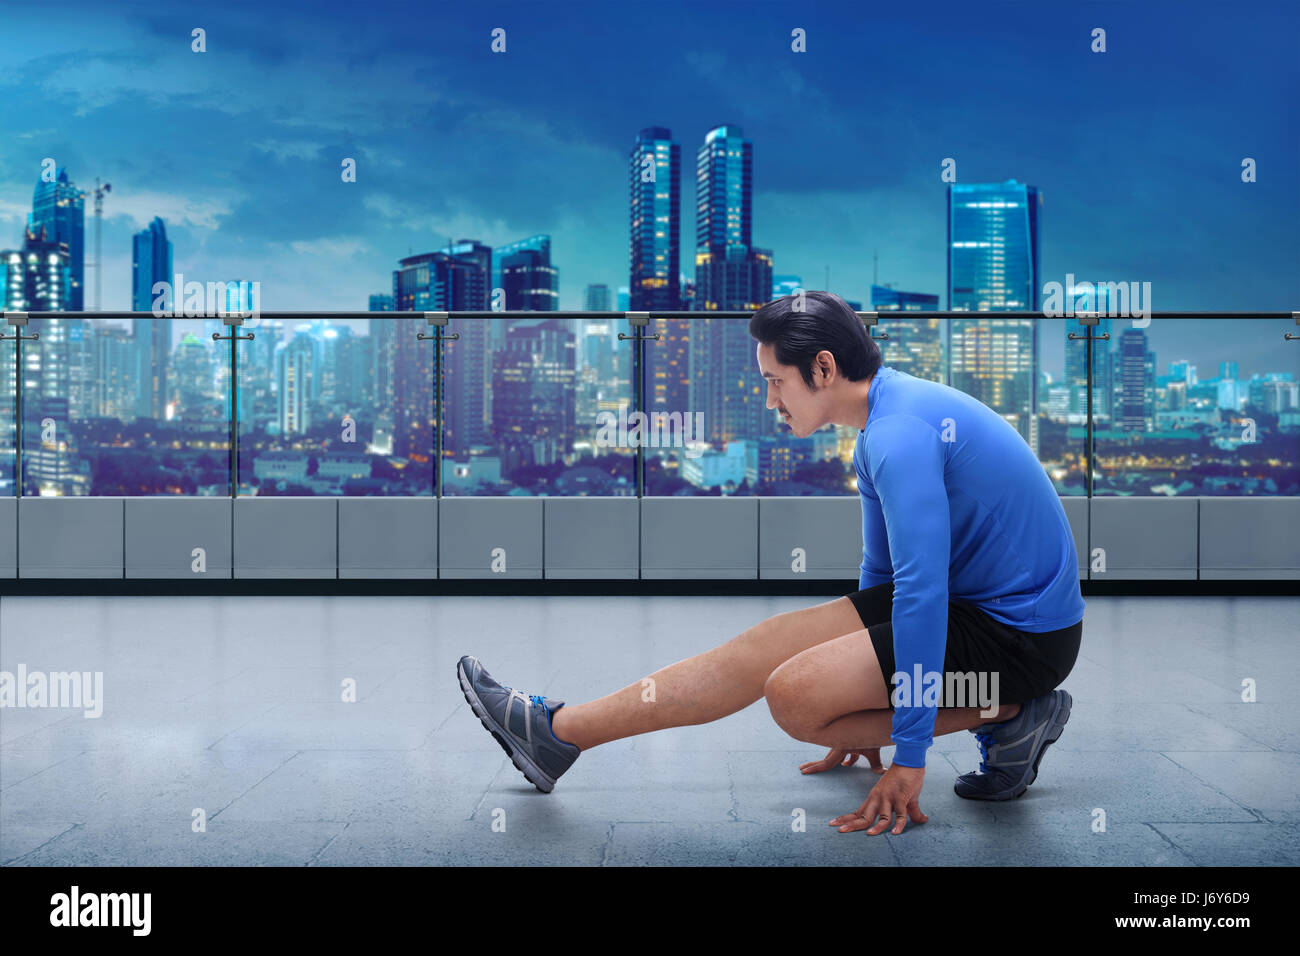 Black gym shoes stock photos black gym shoes stock for Terrace jogging track